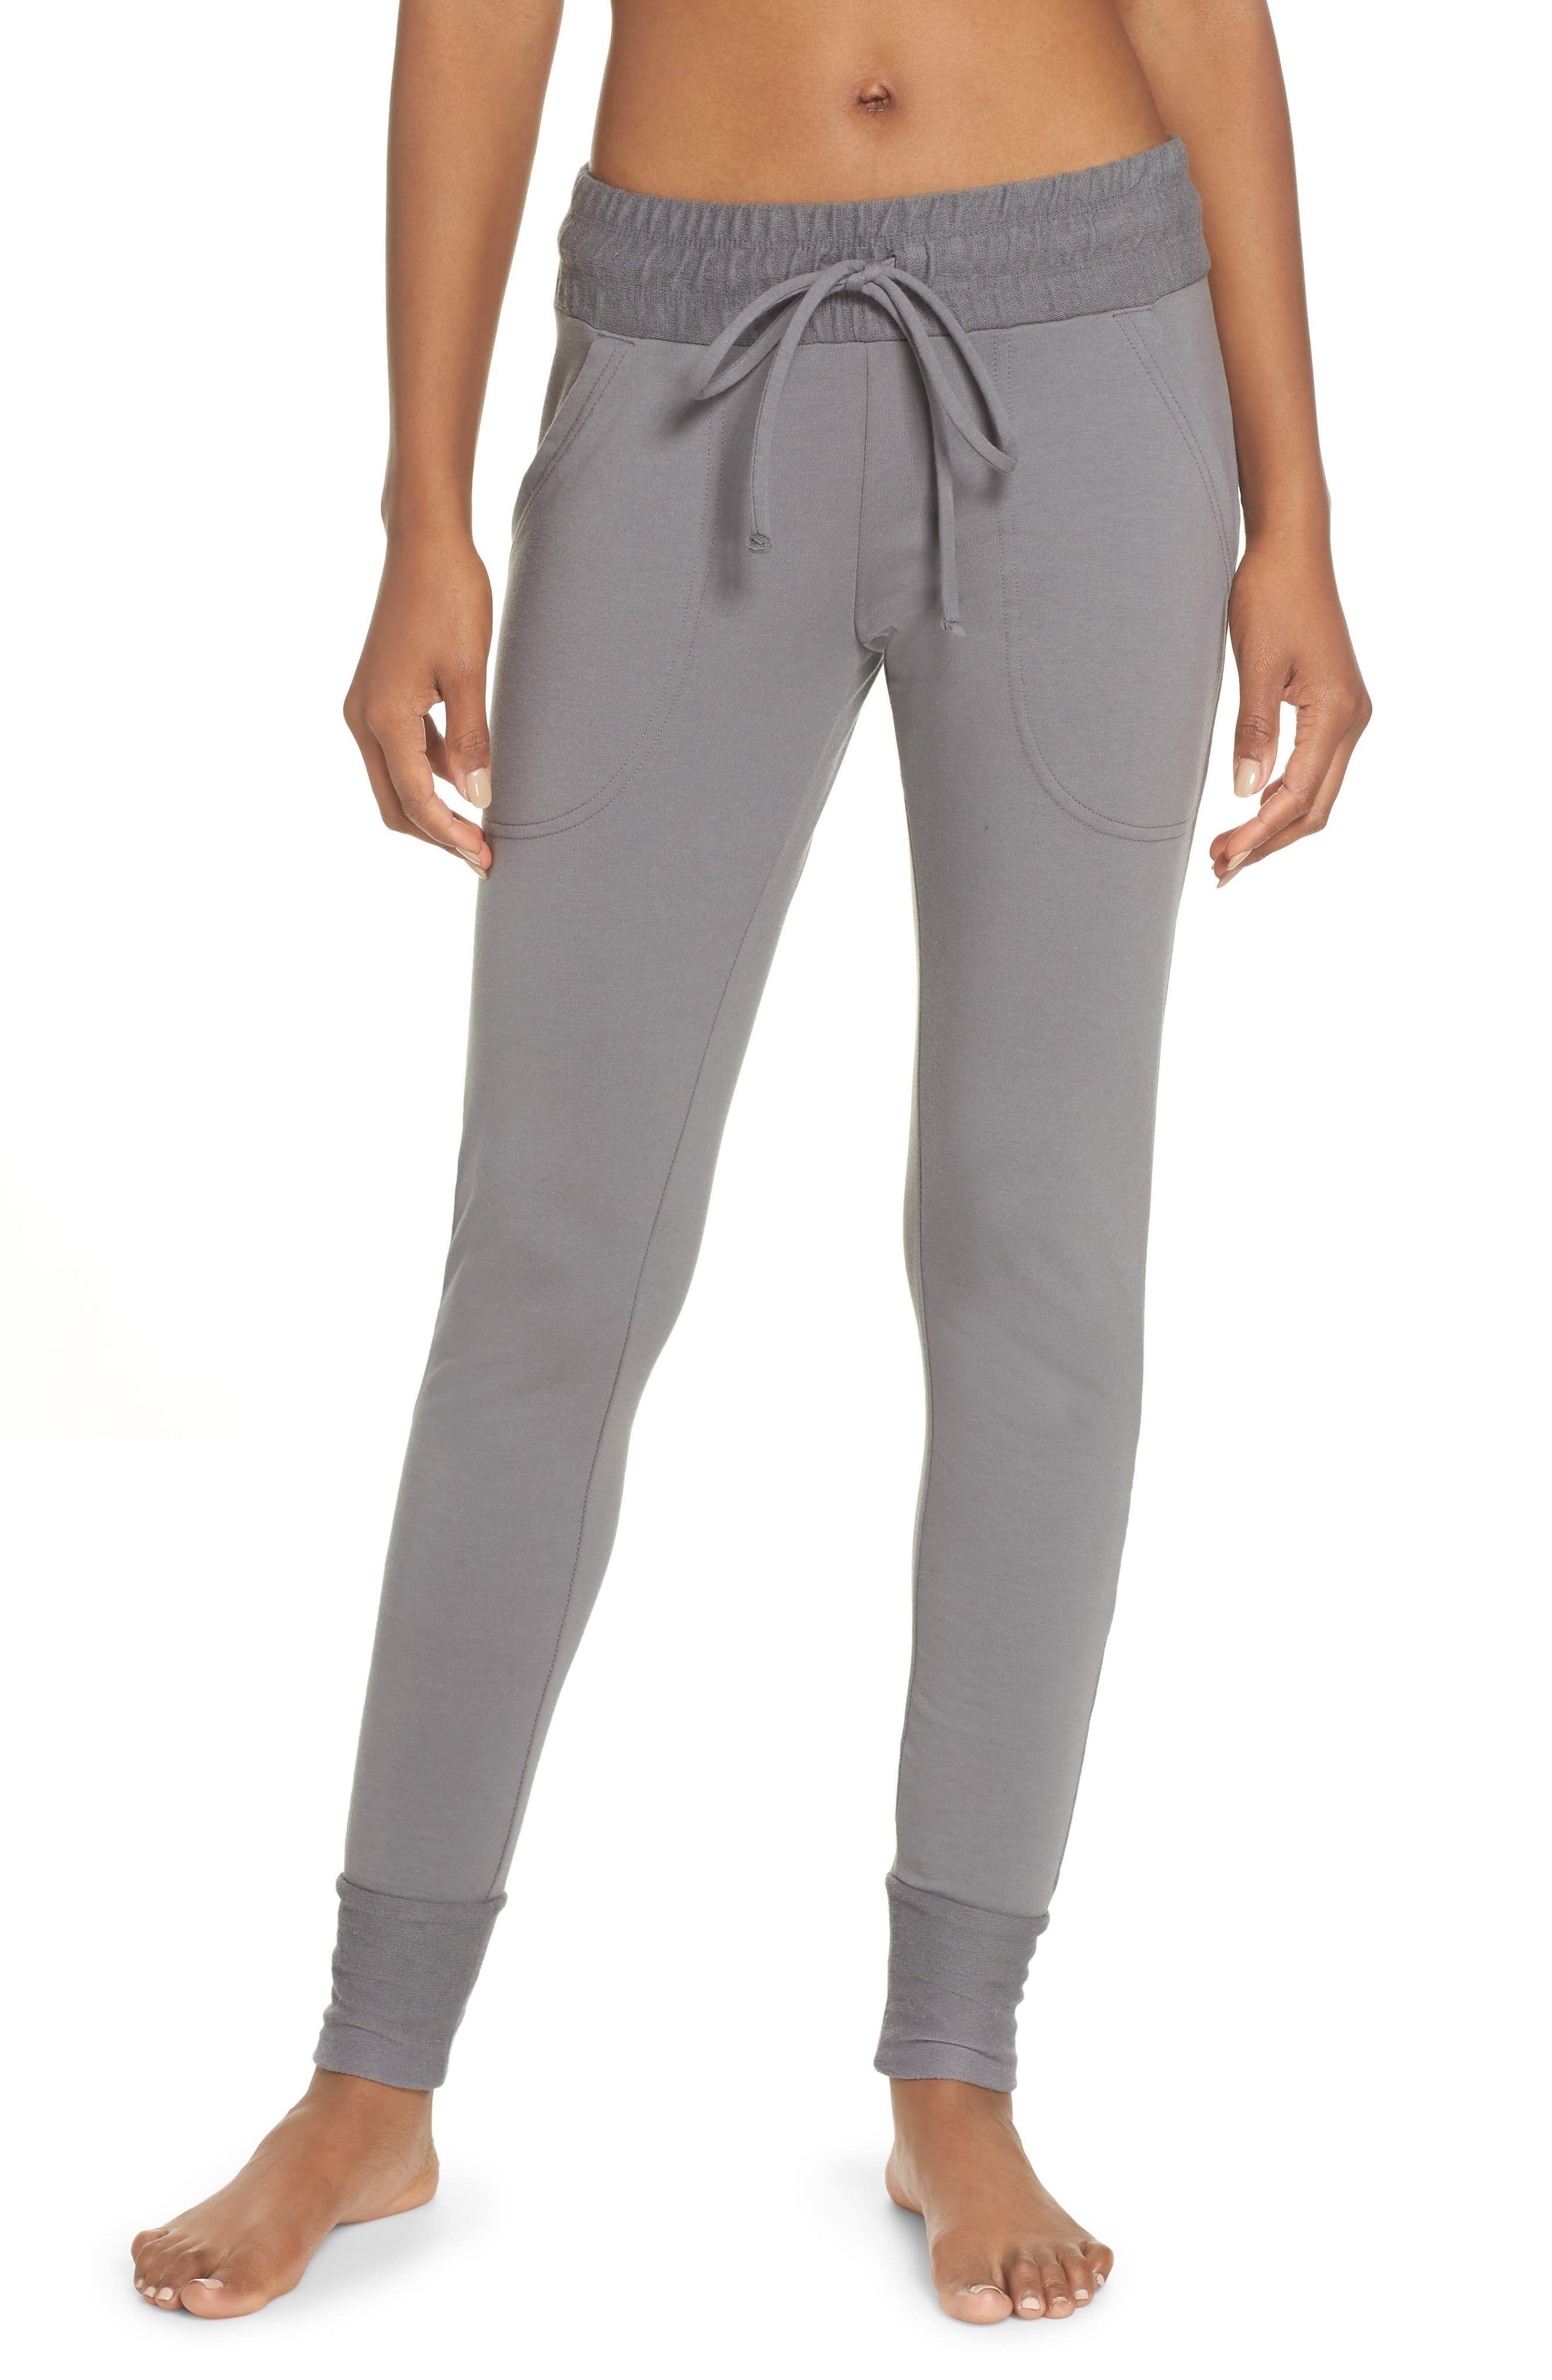 FREE PEOPLE MOVEMENT Sunny Skinny Sweatpants, Main, color, DARK GREY